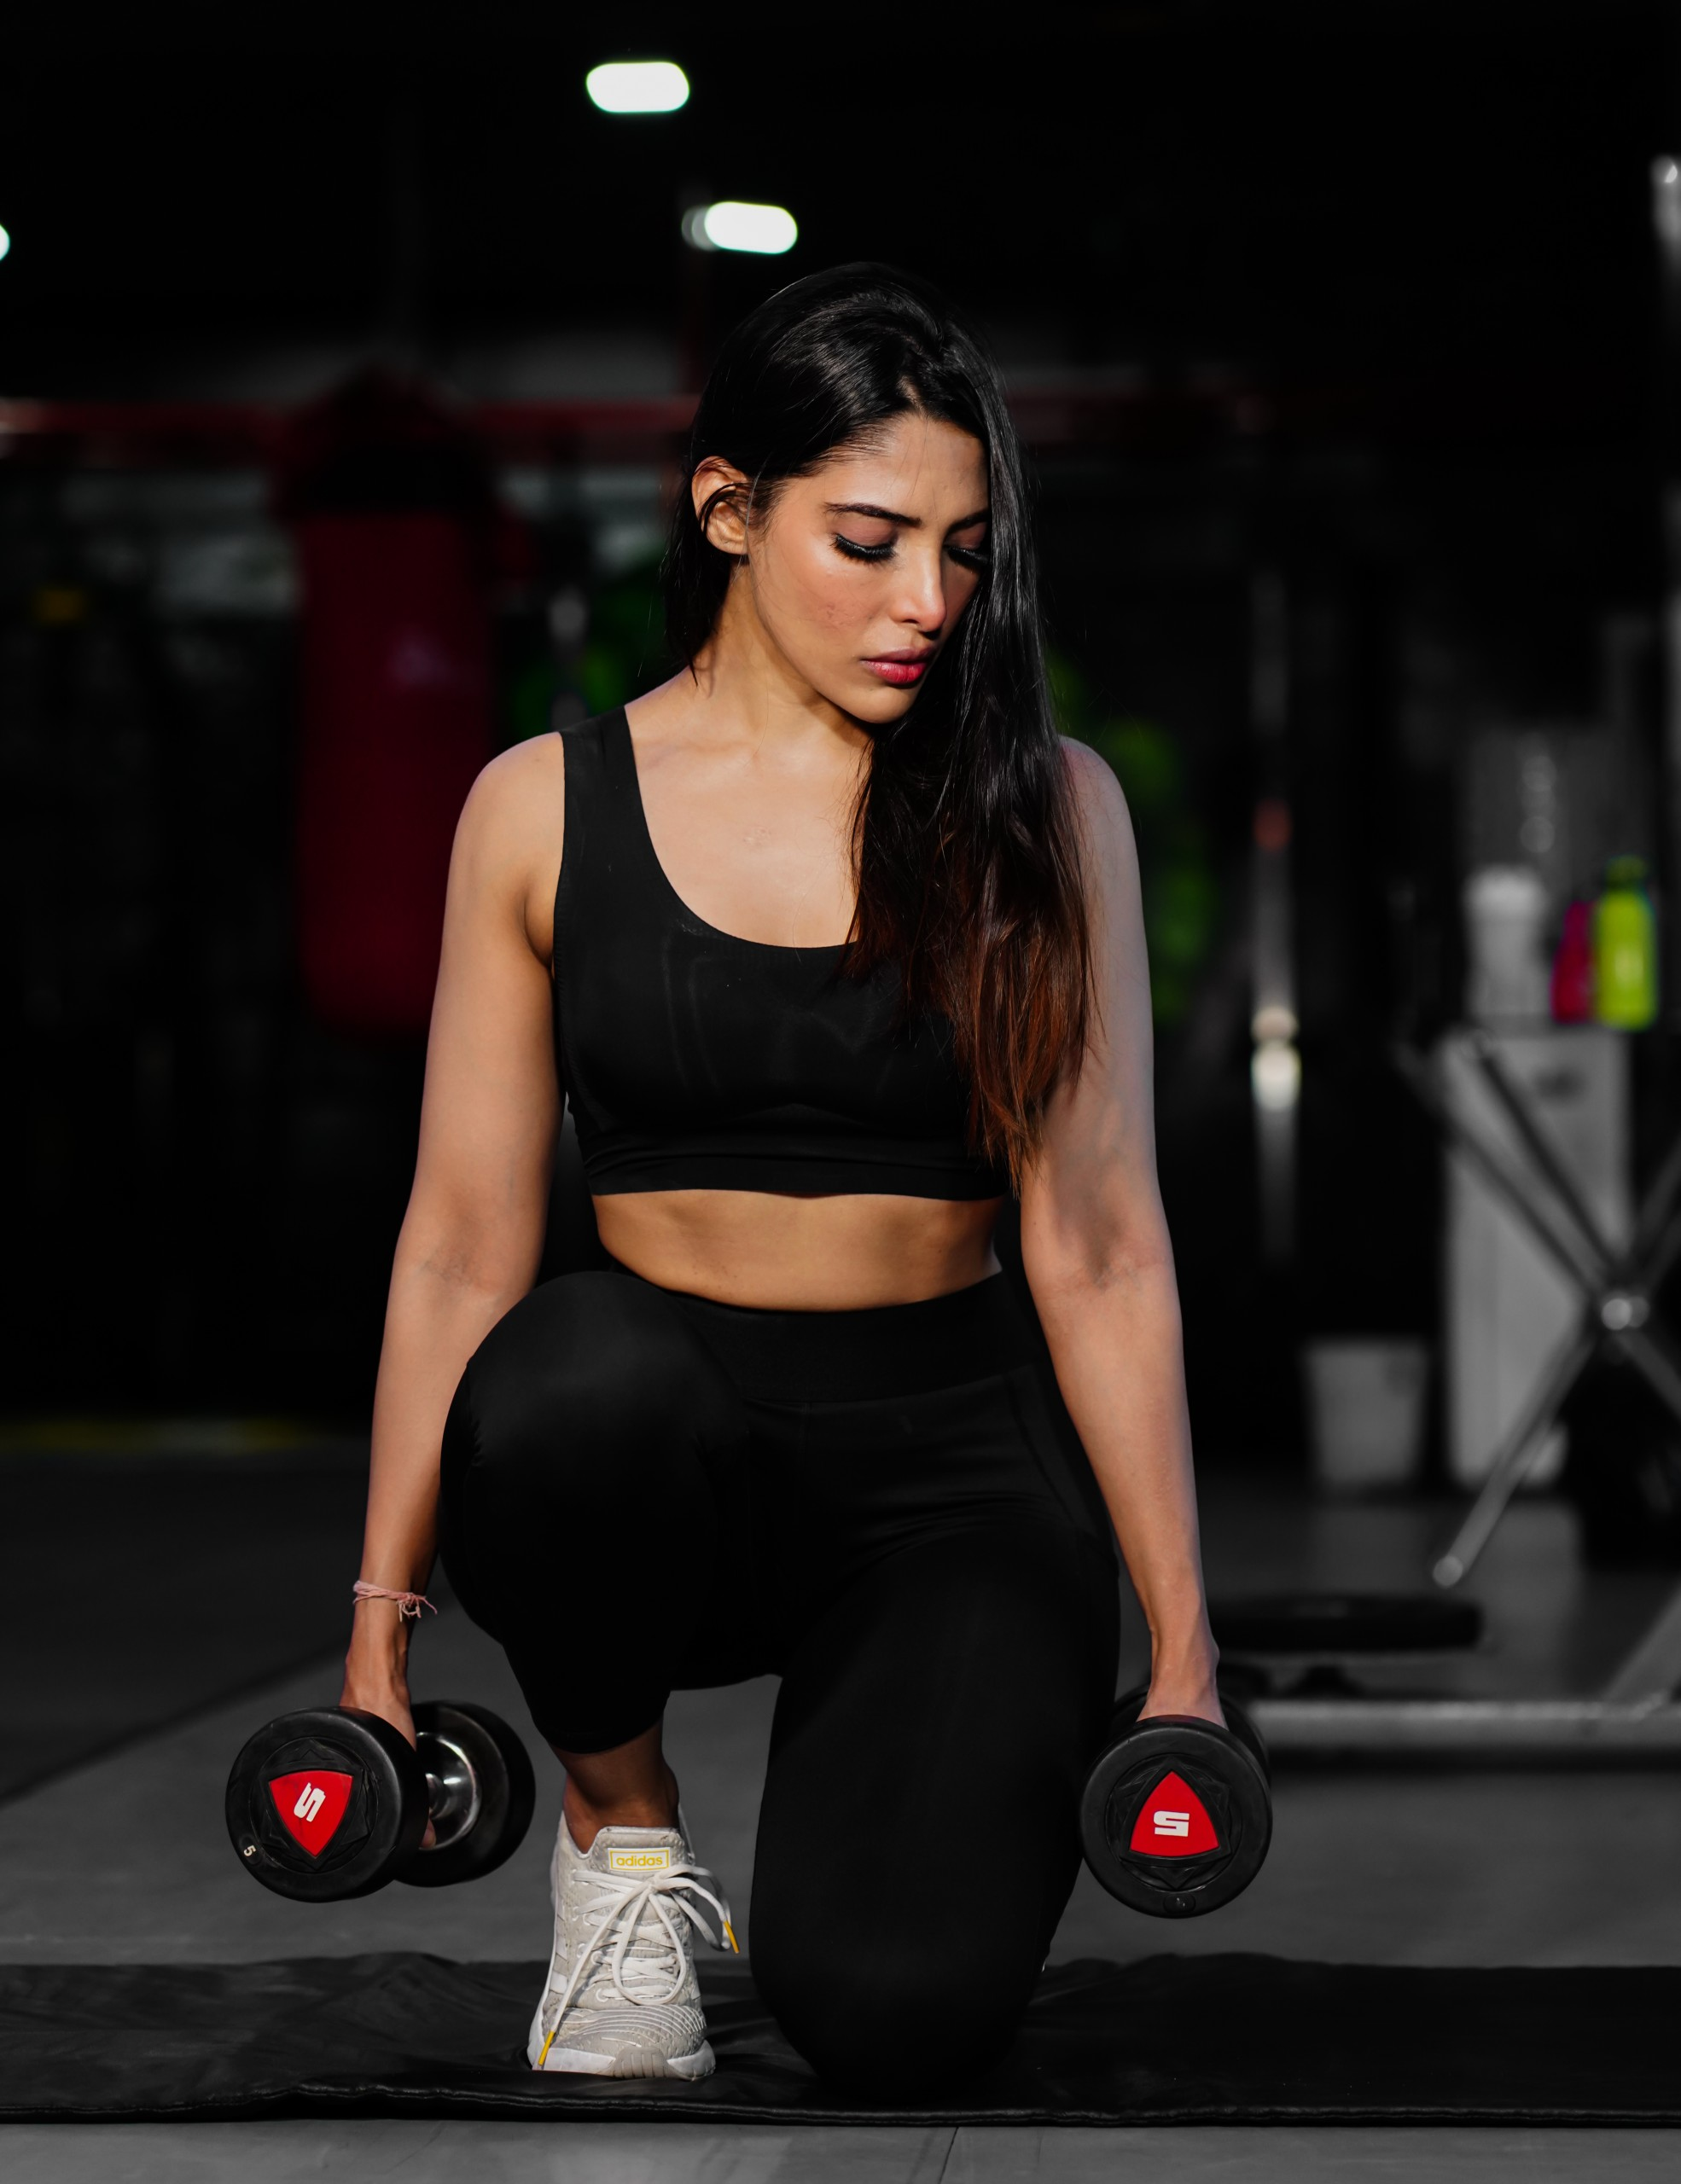 girl with dumbbells in gym